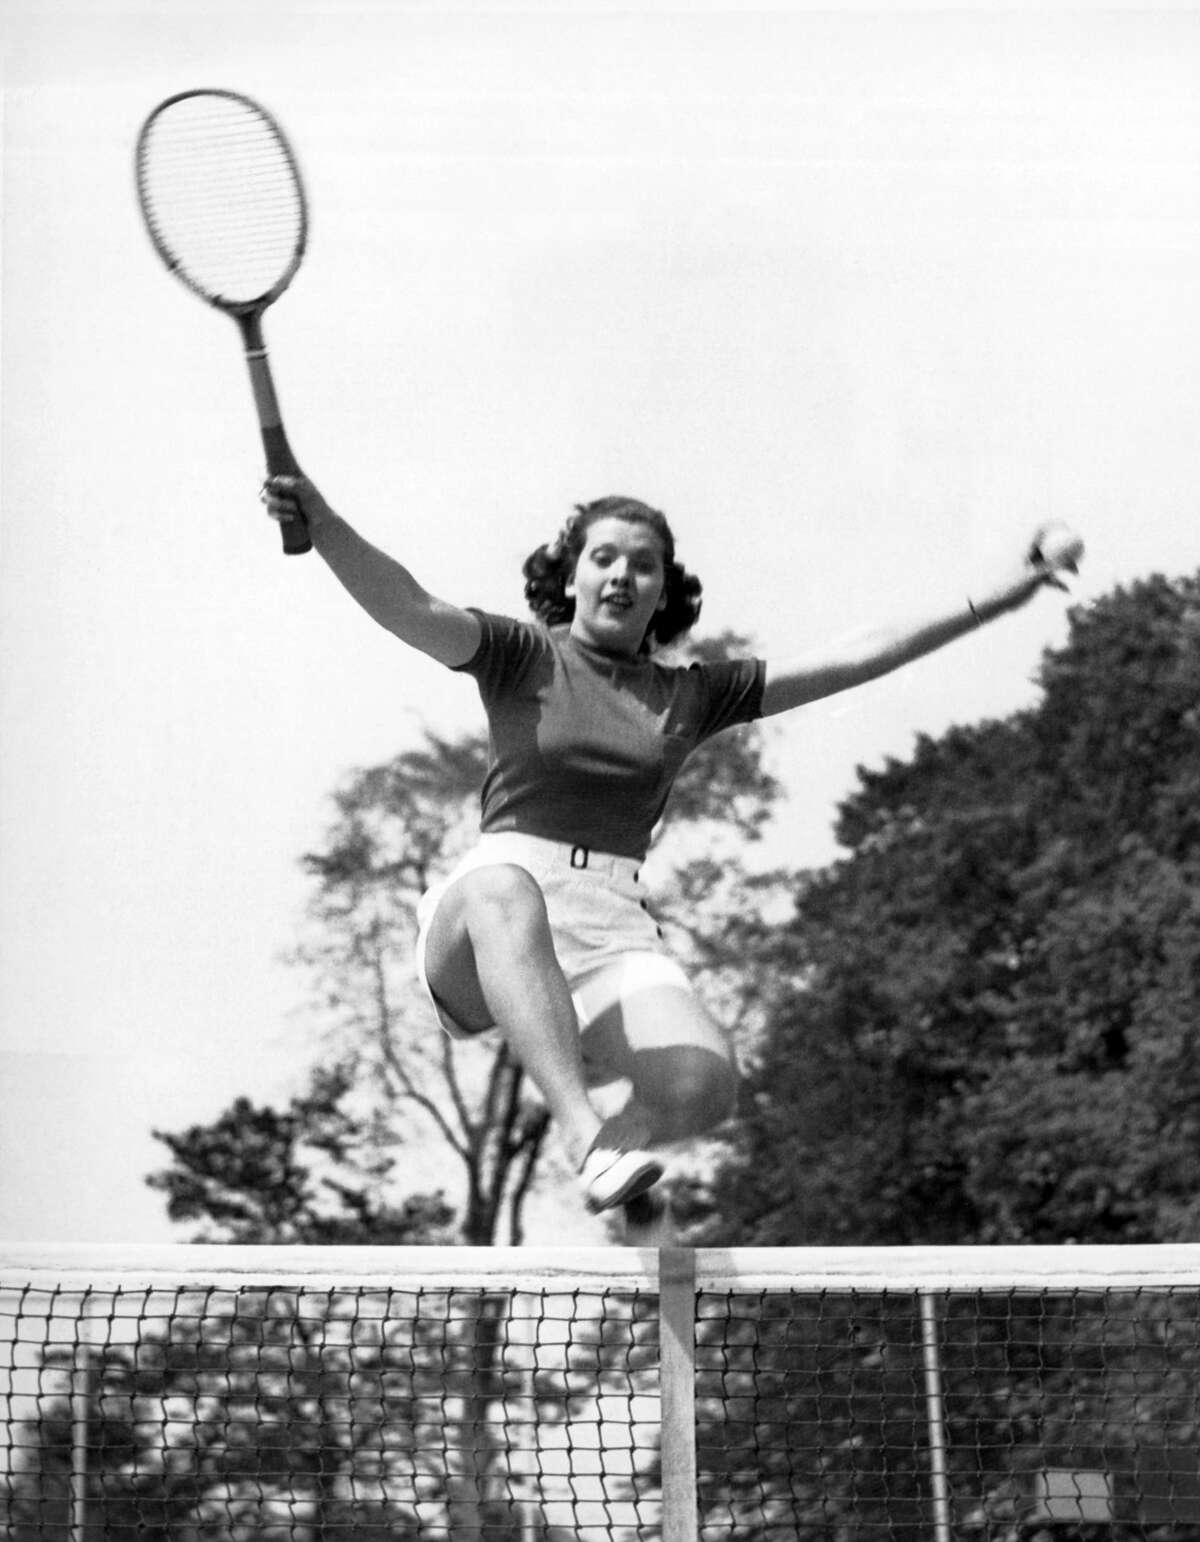 The 18 year old woman leaping over the tennis net was named 'Typical American Girl Athlete' by the Athletic Committee of the Longshore Club in Westport, Westport, Connecticut, May 23, 1936. (Photo by Underwood Archives/Getty Images)